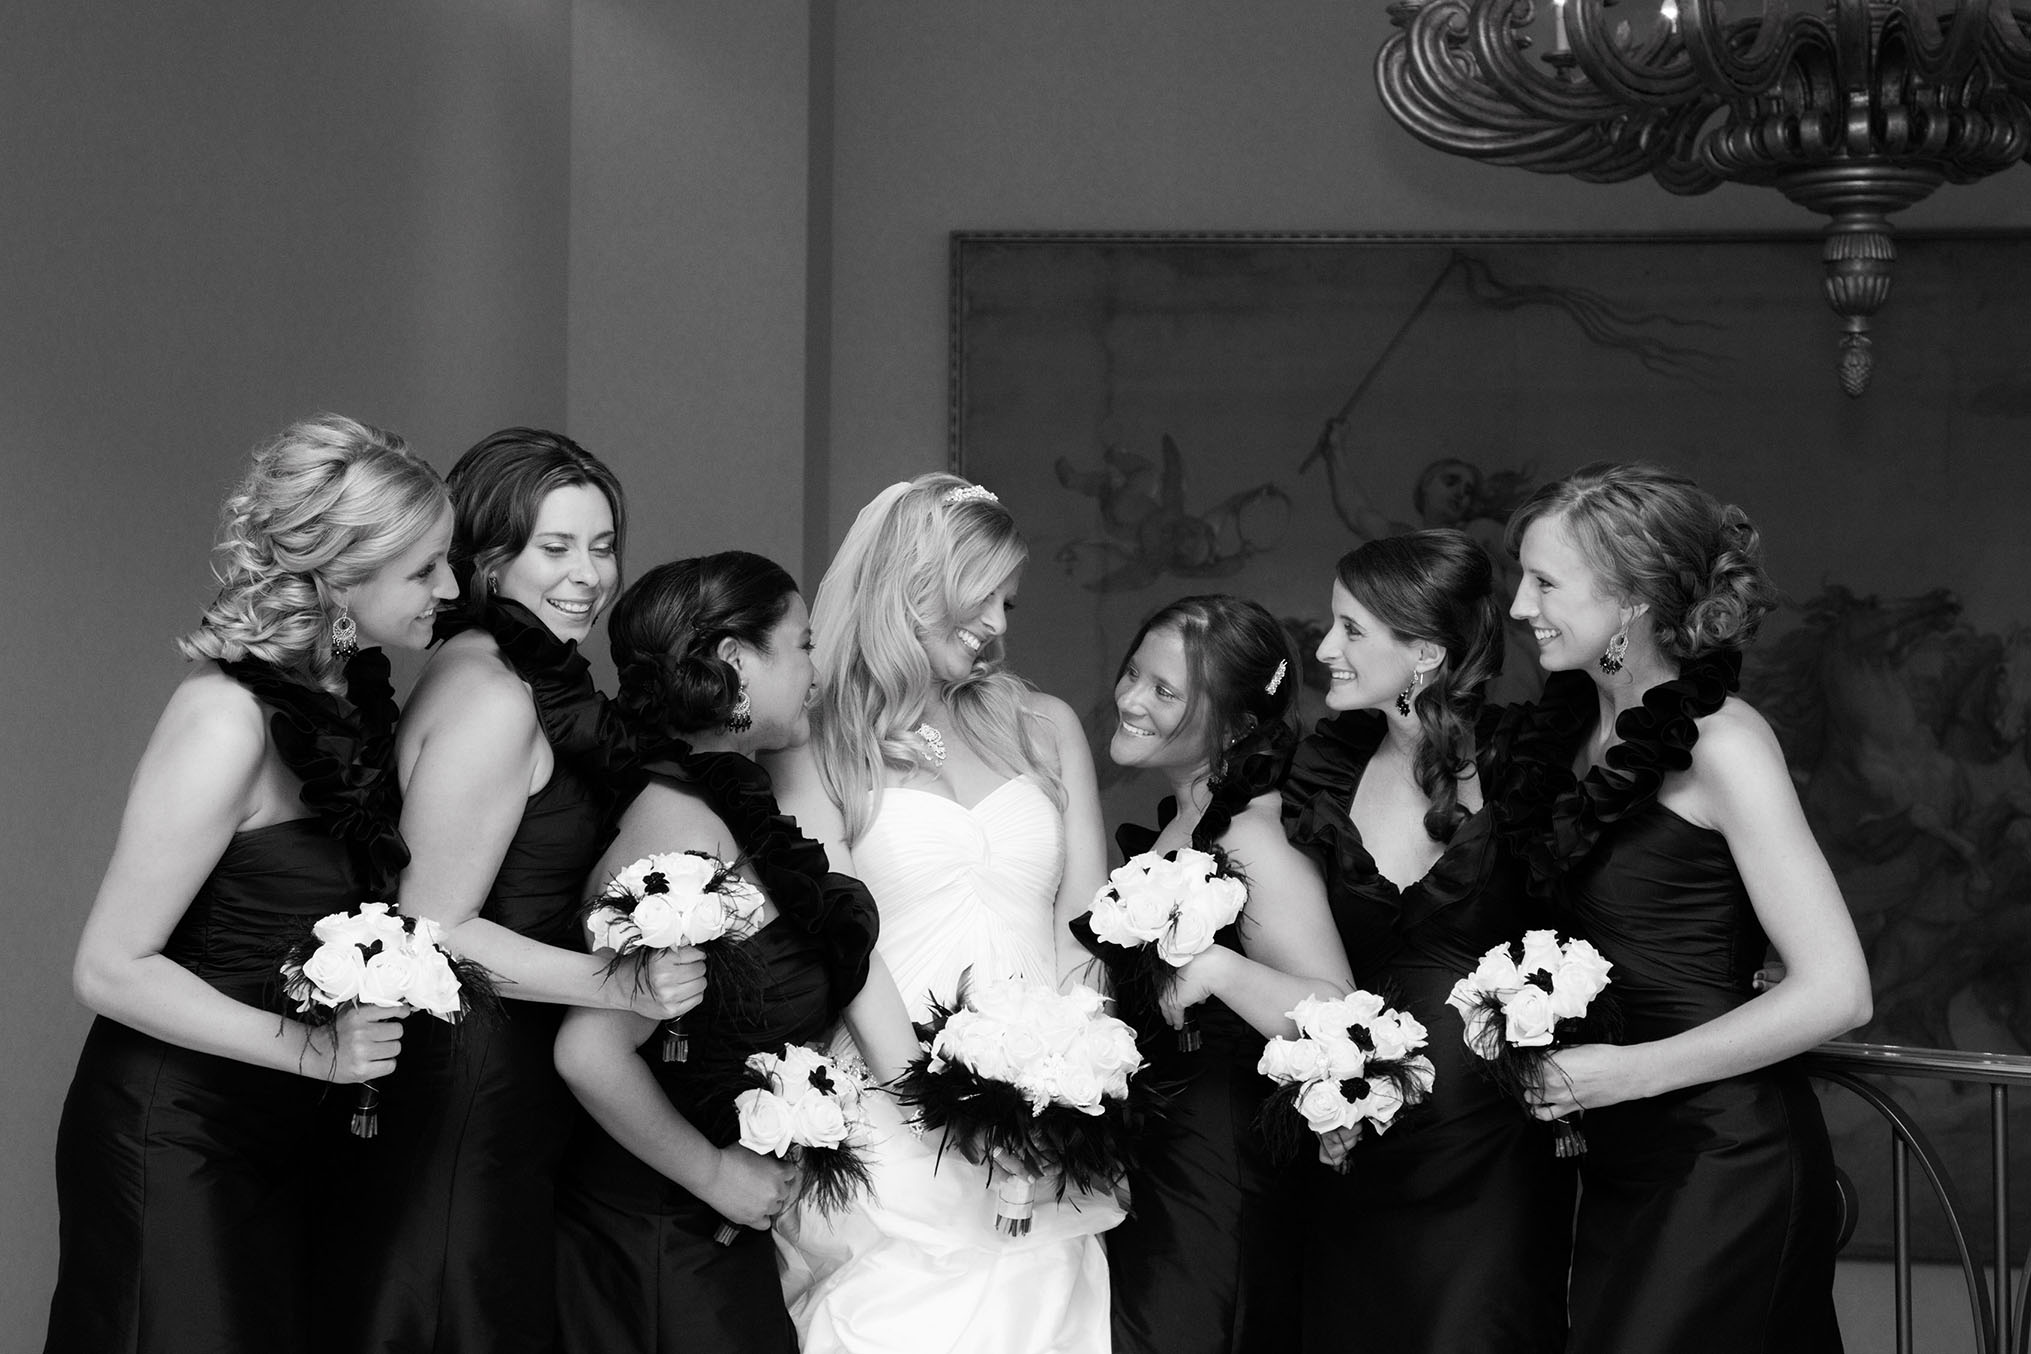 Tips for Bridesmaid Duties & Responsibilities